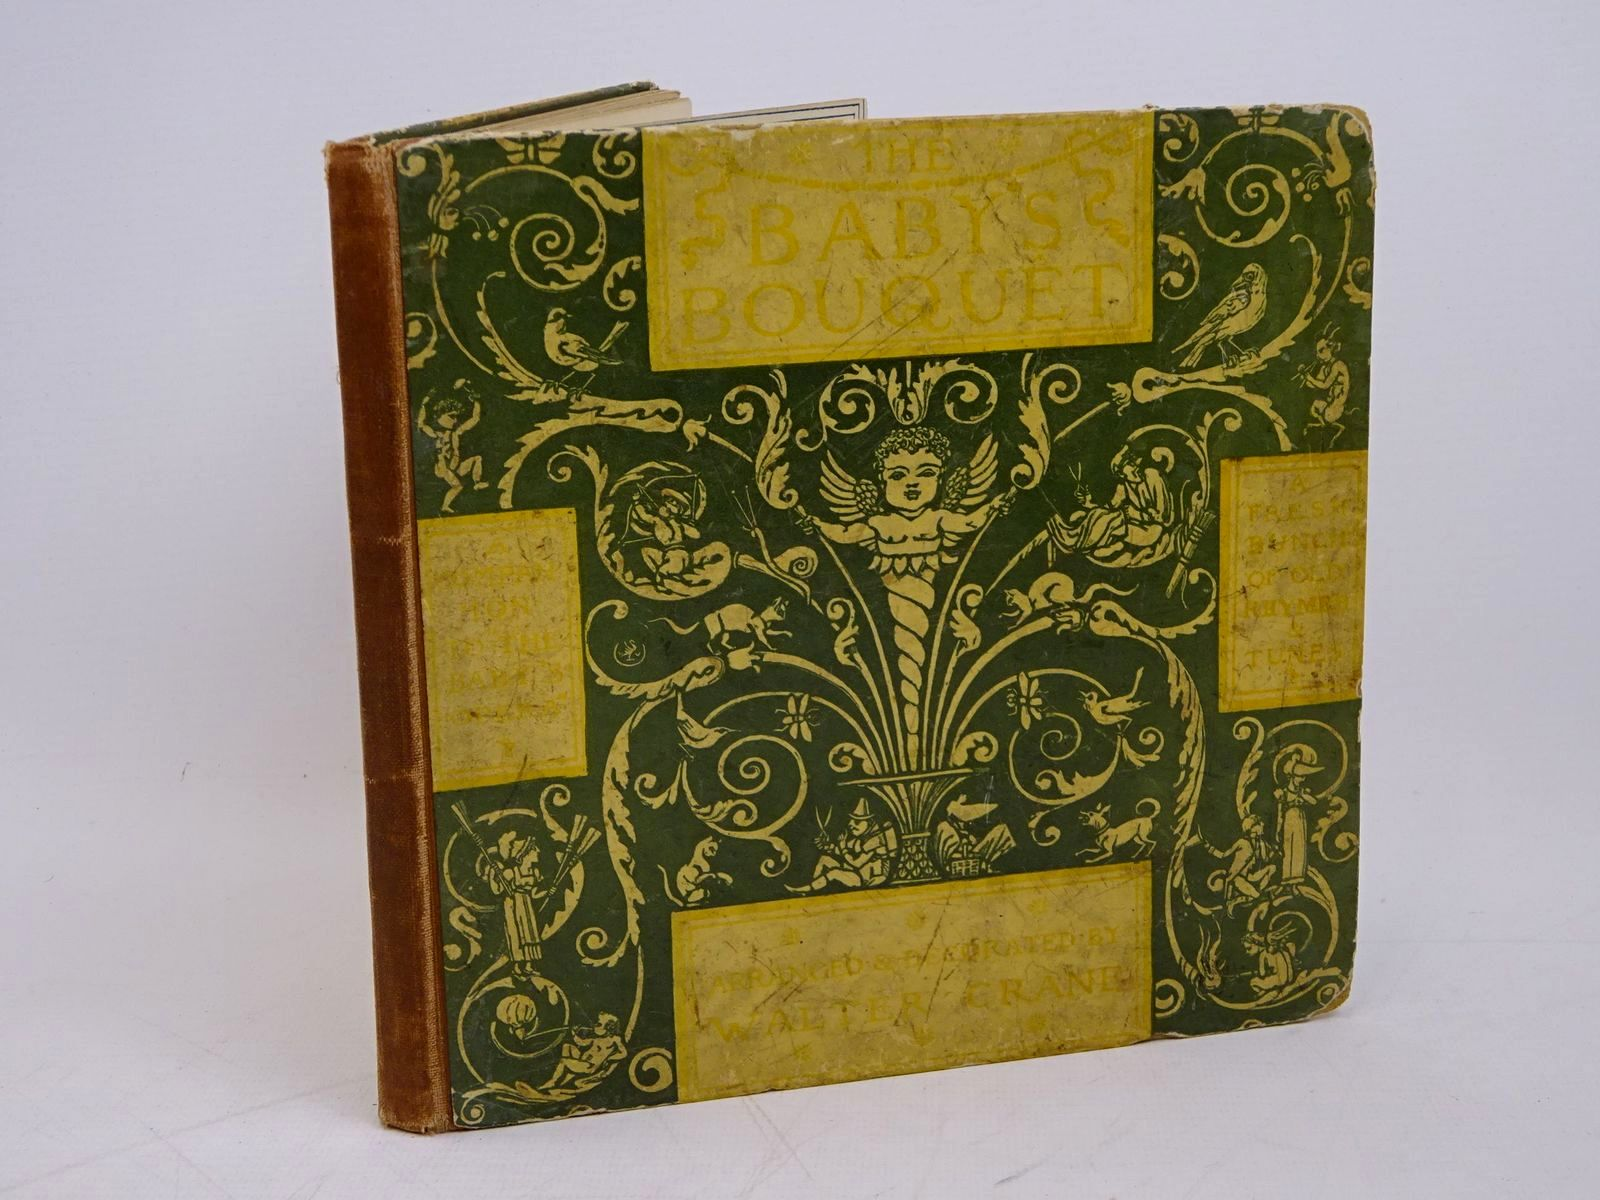 Photo of THE BABY'S BOUQUET illustrated by Crane, Walter published by Frederick Warne & Co. (STOCK CODE: 1317861)  for sale by Stella & Rose's Books